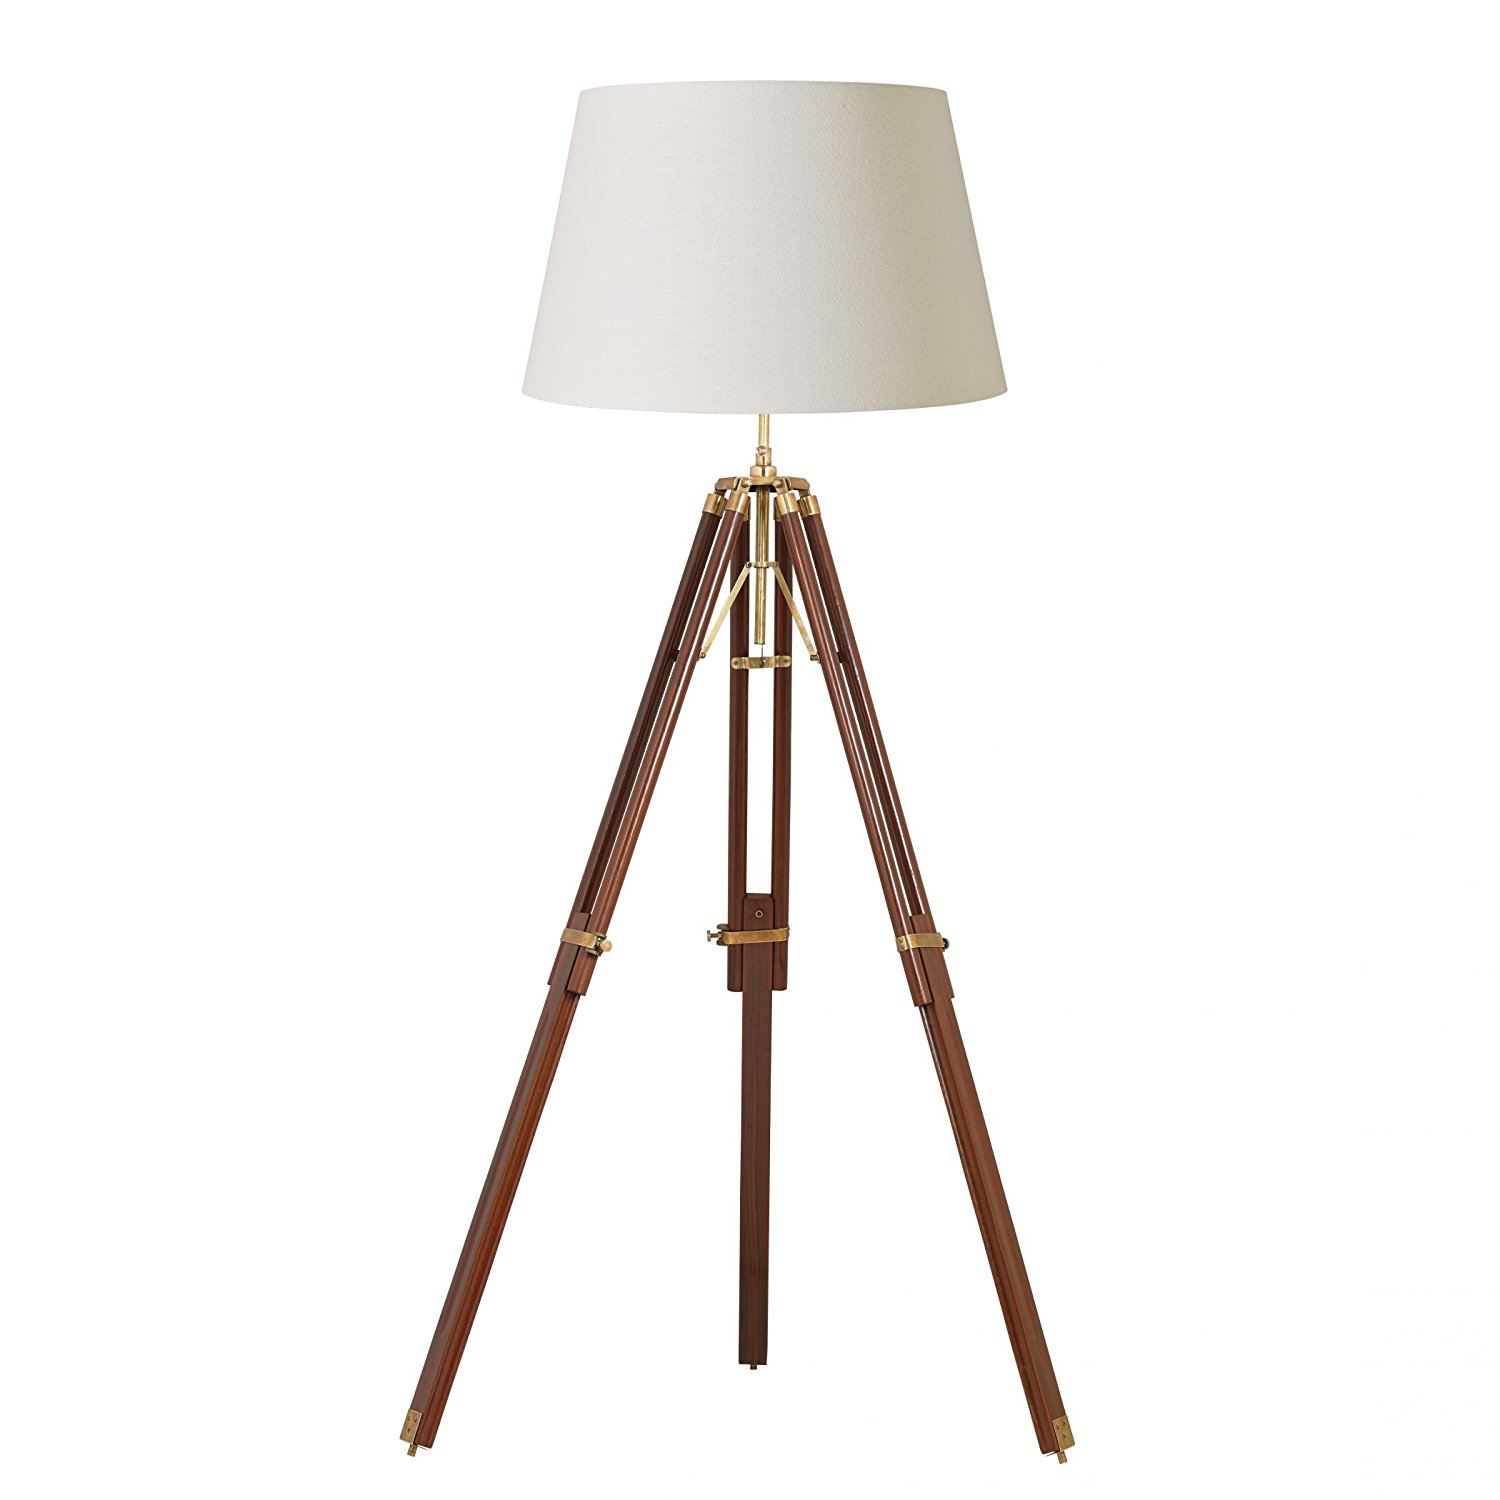 Photographers Lamp Floor | Brass Pharmacy Floor Lamp | Tripod Lamp